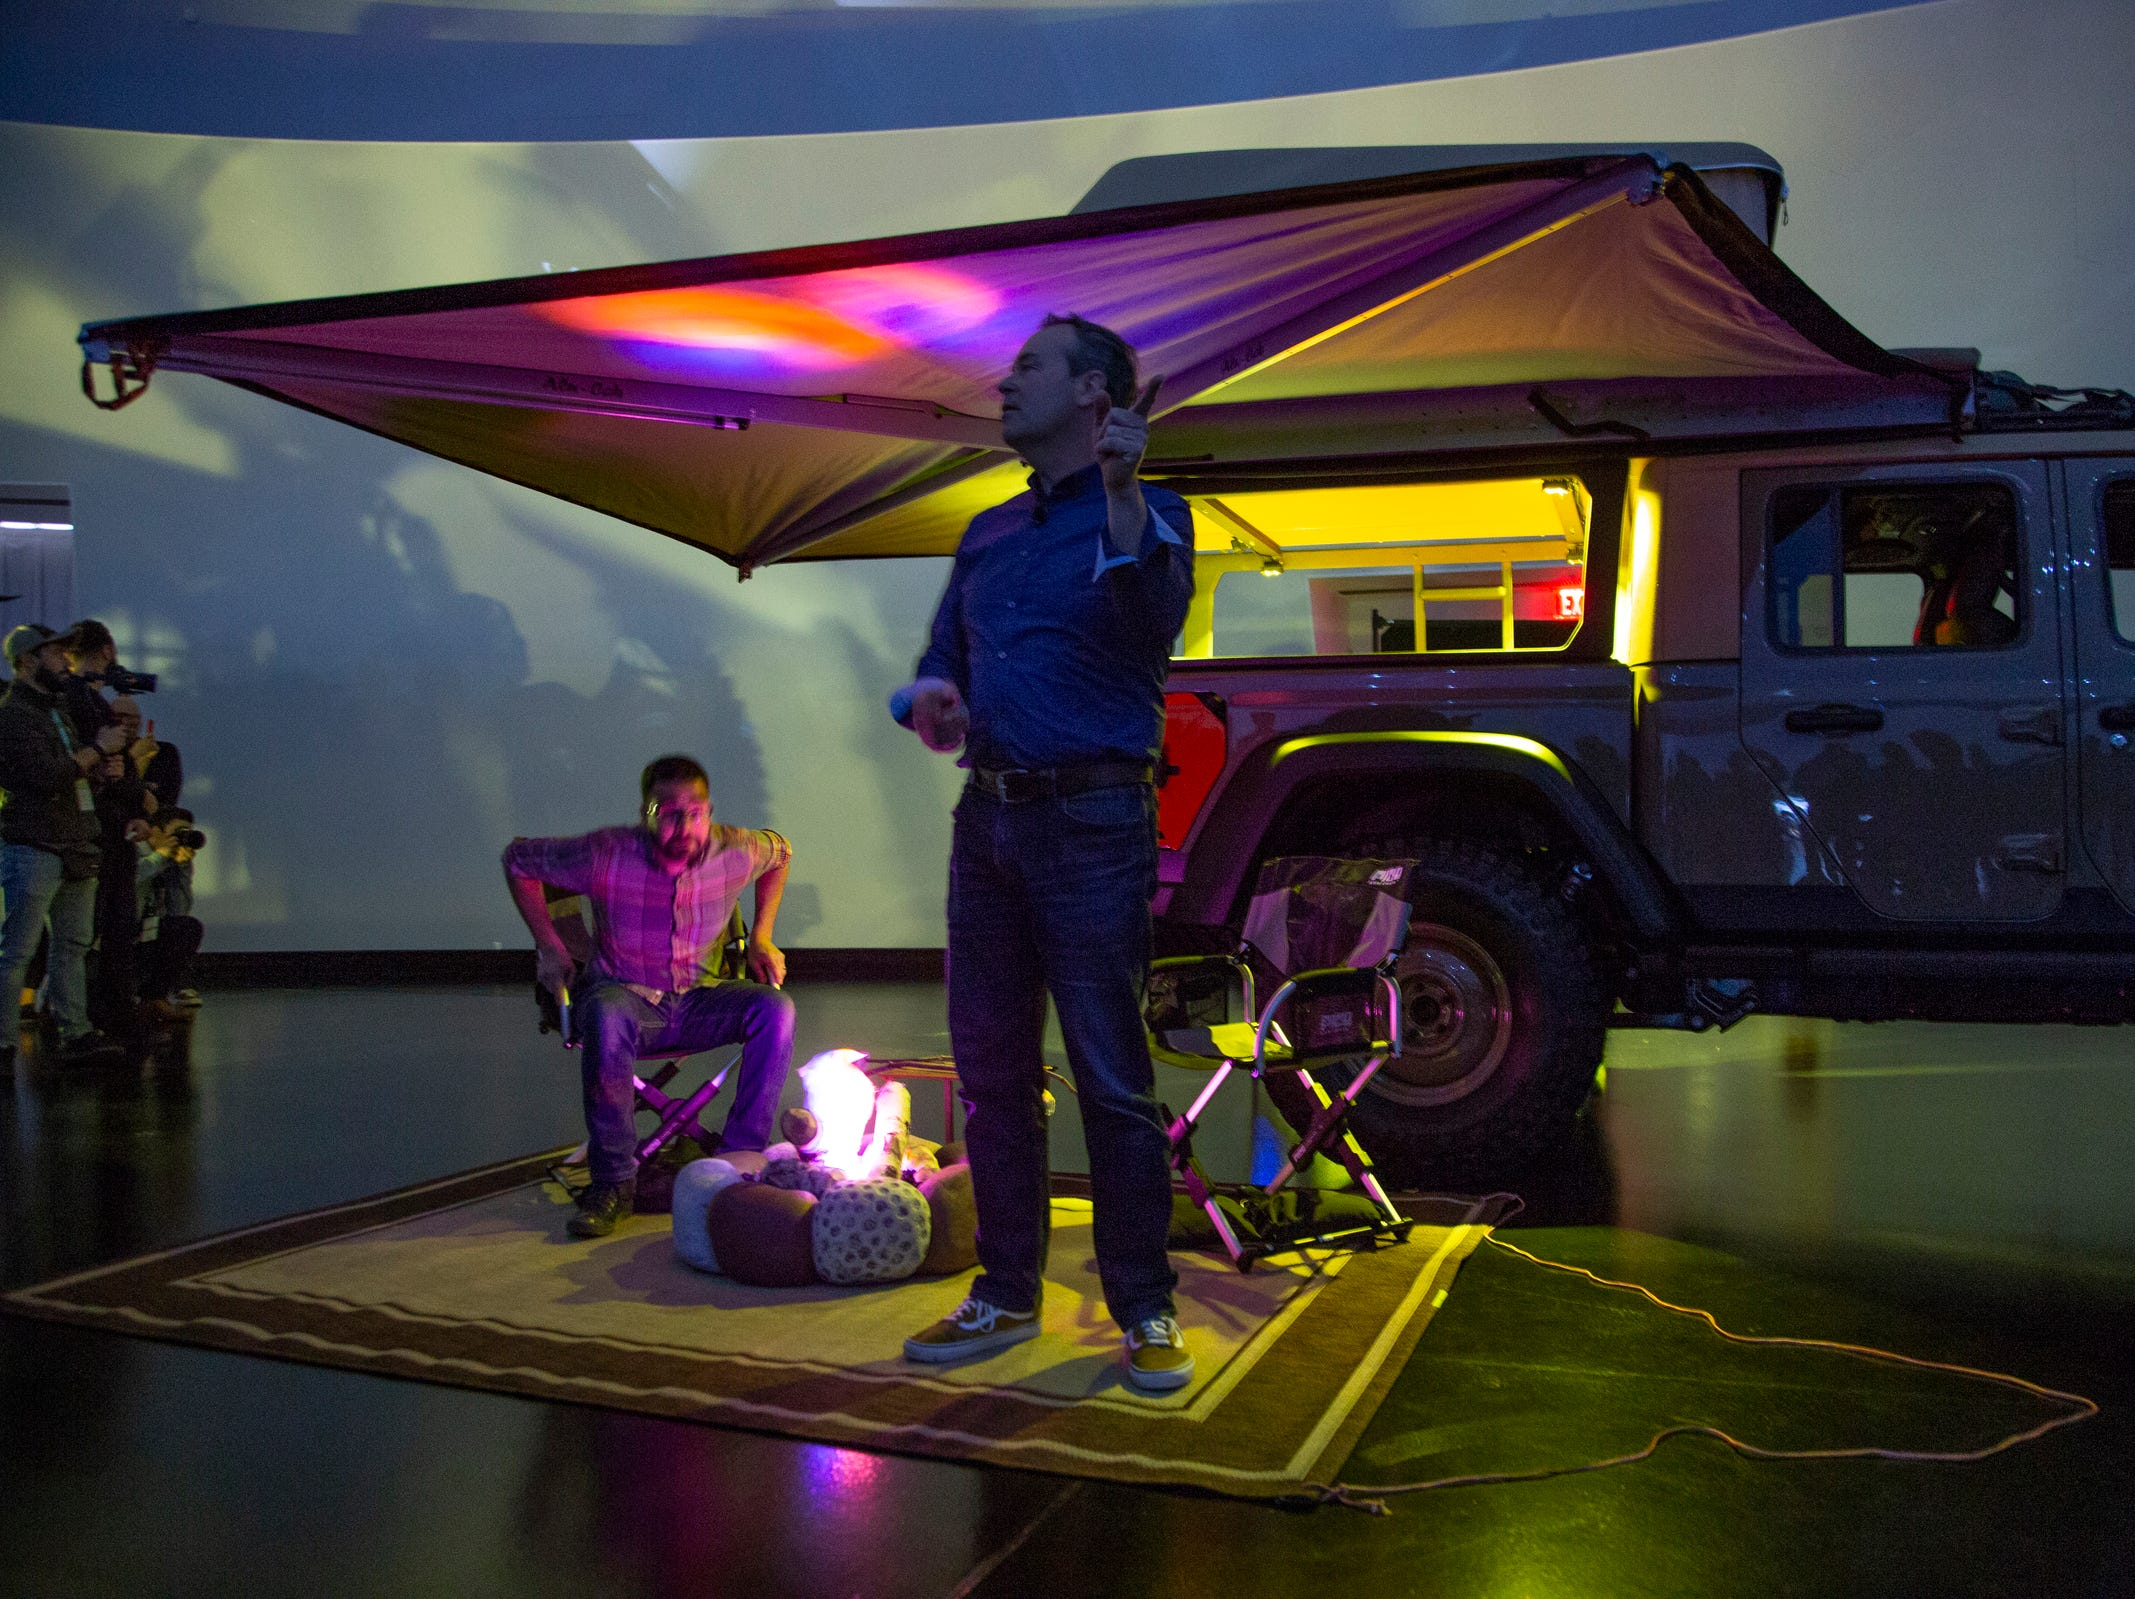 Jeep and Mopar brands debut six concept vehicles including the Jeep Wayout with the help of Mark Allen, head of Jeep design Friday, April 5, 2019 at the Fiat Chrysler Tech Center and headquarters for the 53rd annual Moab Easter Jeep Safari. The Jeep Wayout showcases a full roof-top tent and custom, large sprawling canopy. The Wayout's body armored exterior features a new Gator Green color that will be available on all production Gladiator models.